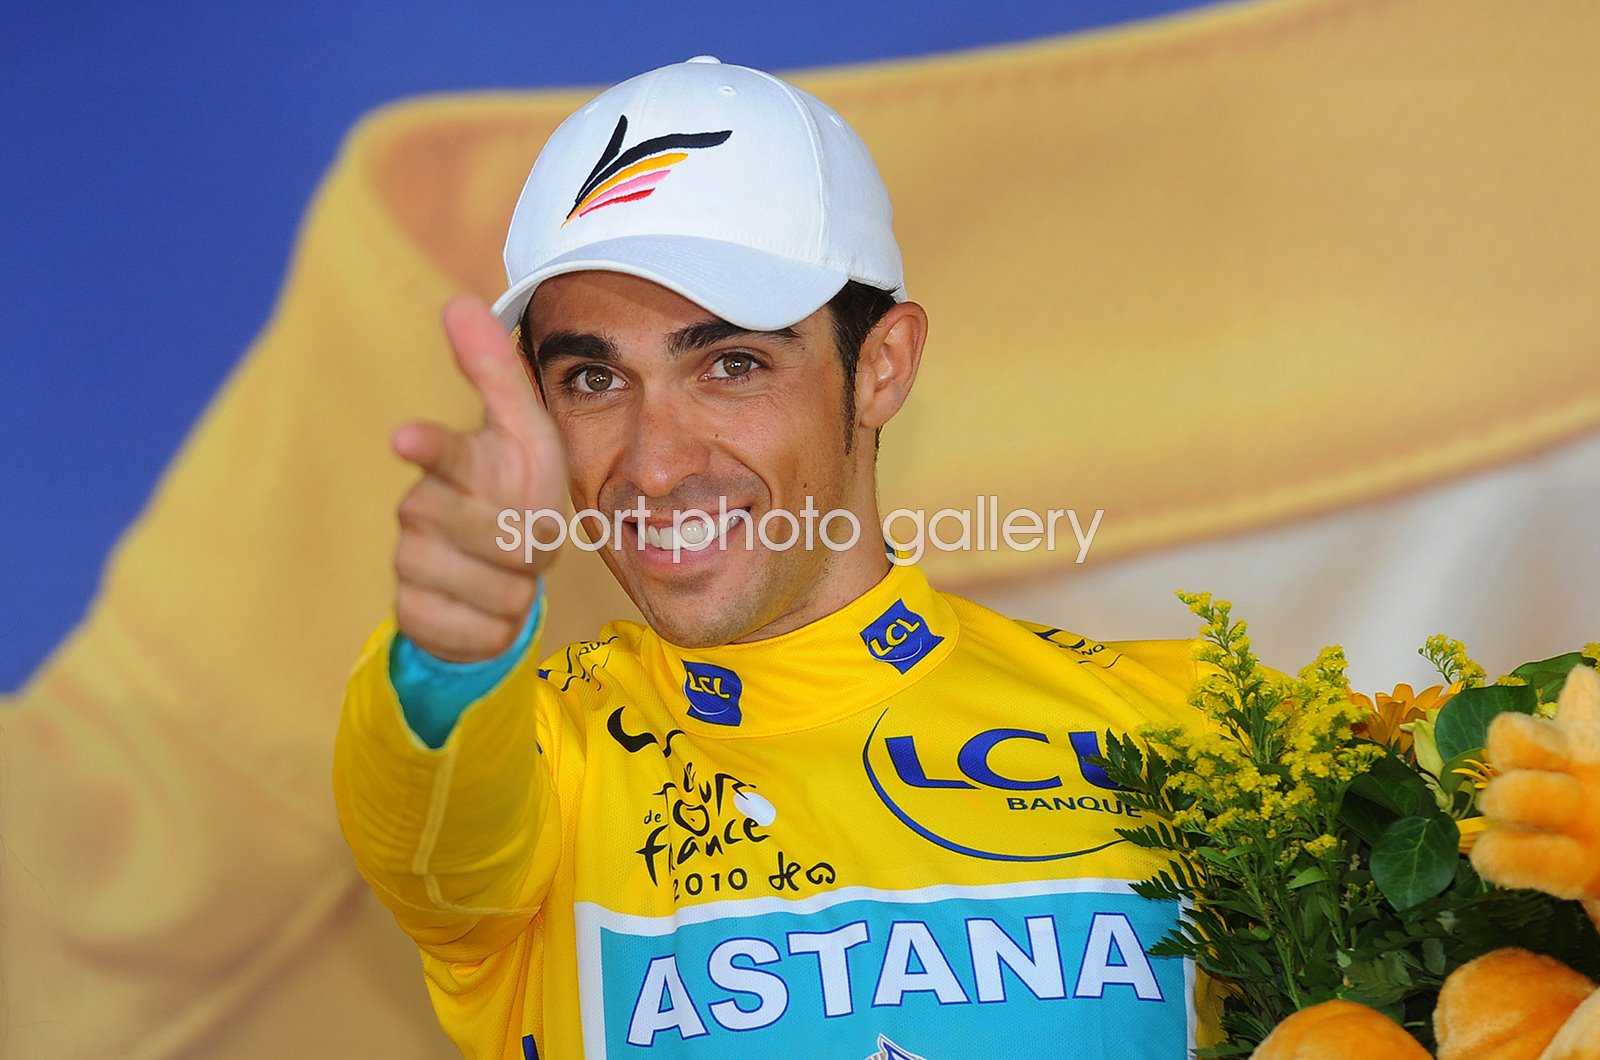 Alberto Contador Yellow Jersey Tour de France Stage 18 2010